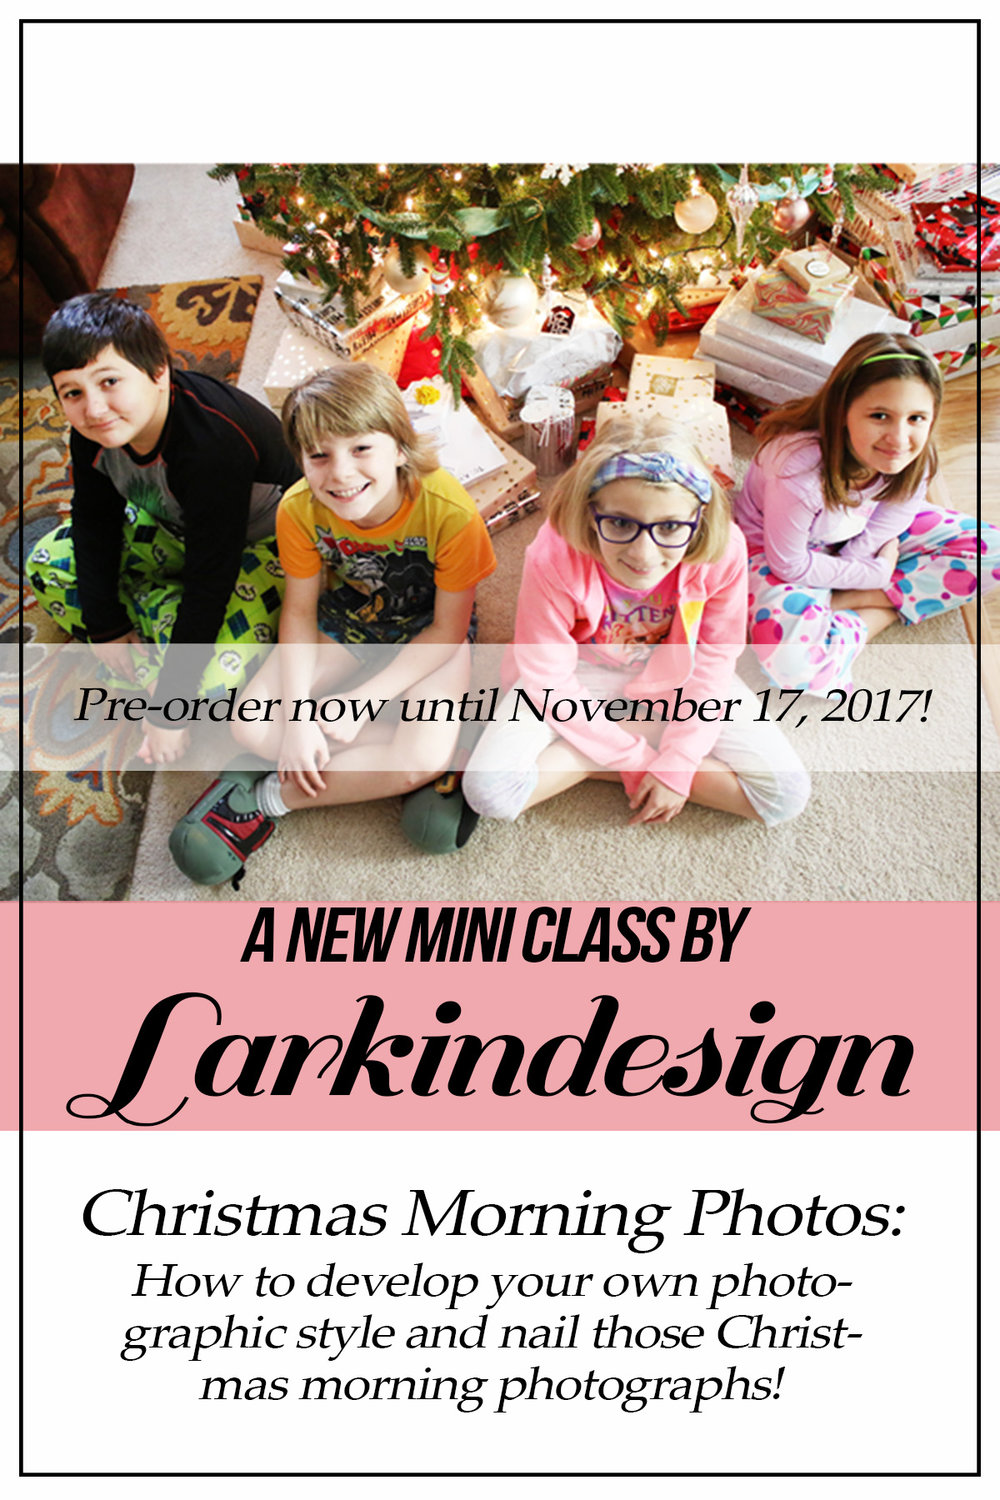 Larkindesign | Christmas Morning Photos%3A A New Mini Class!!!